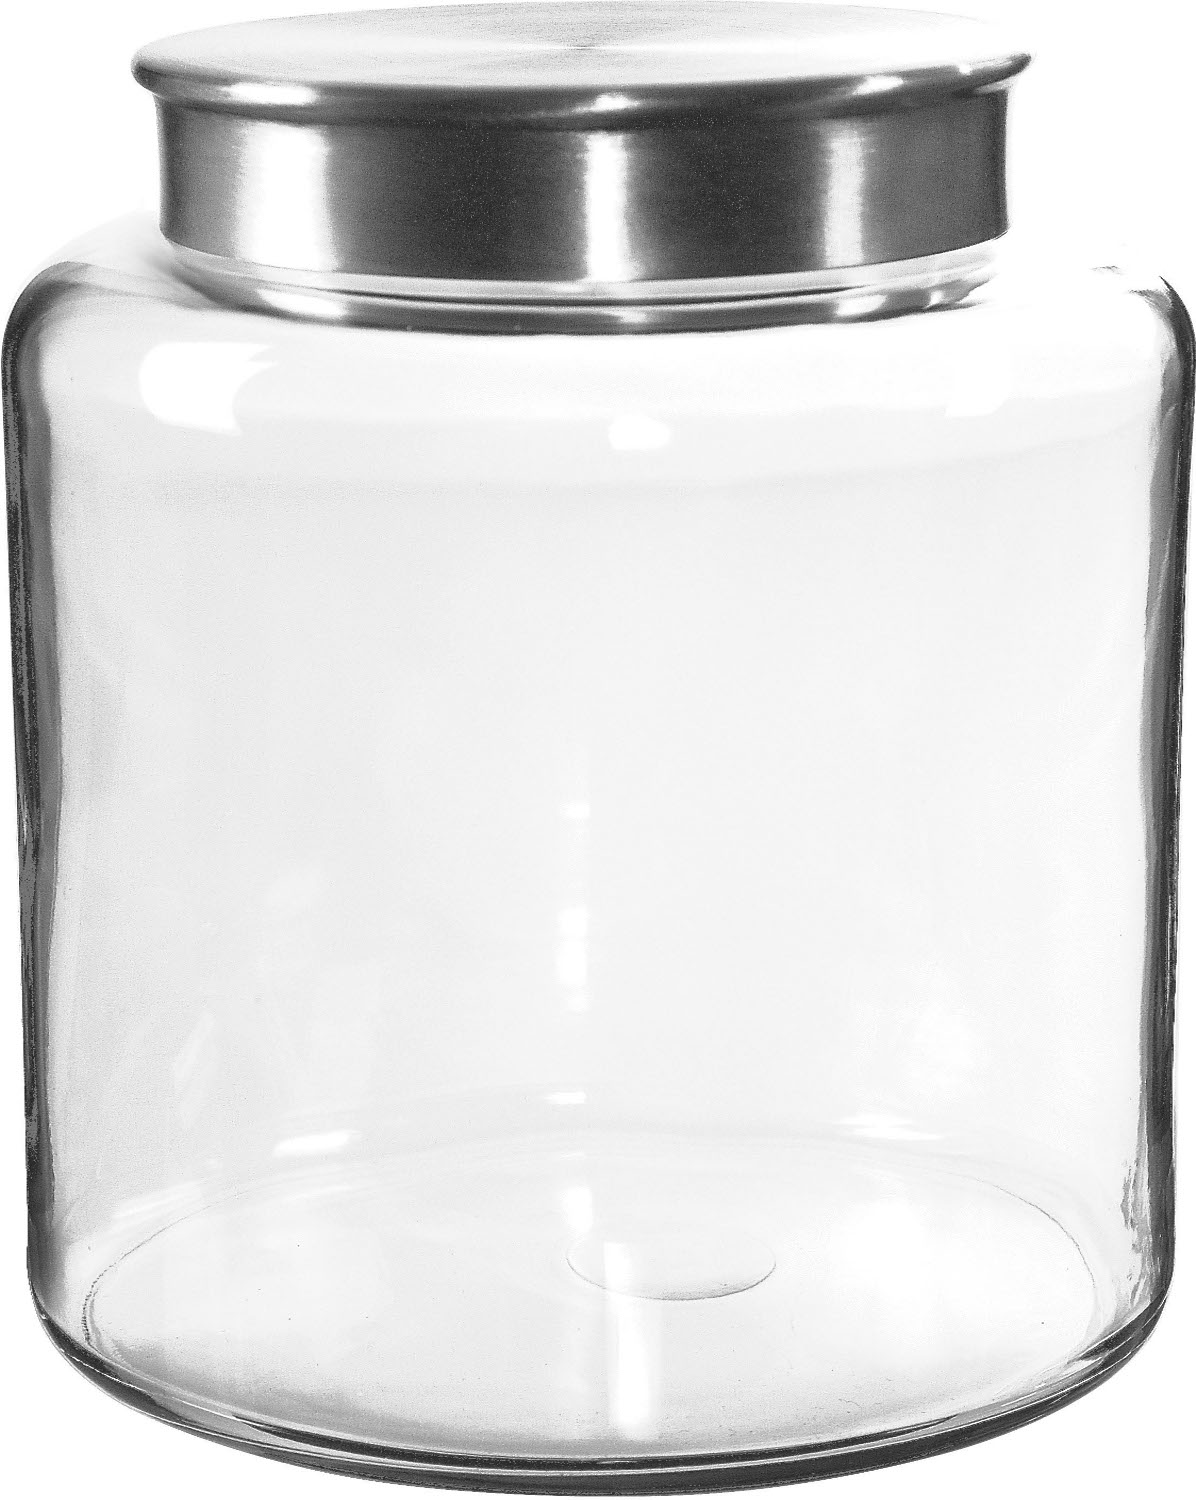 Anchor Hocking Glass Modern Montana Jar with Brushed Aluminum Cover, 2.5 Gallon